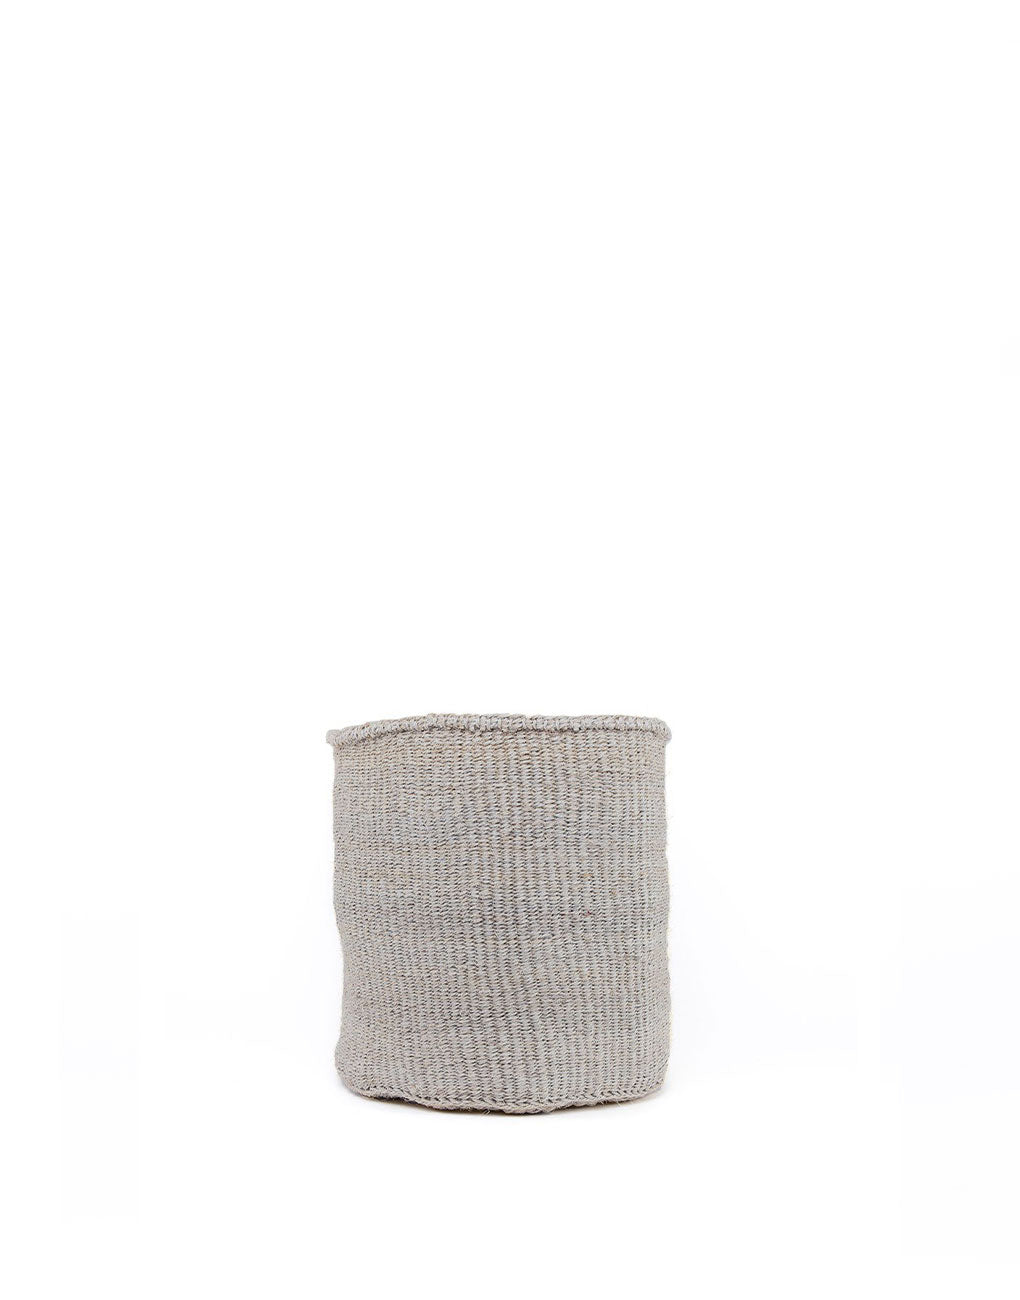 9in Solid Sisal Basket - Gray | The Little Market